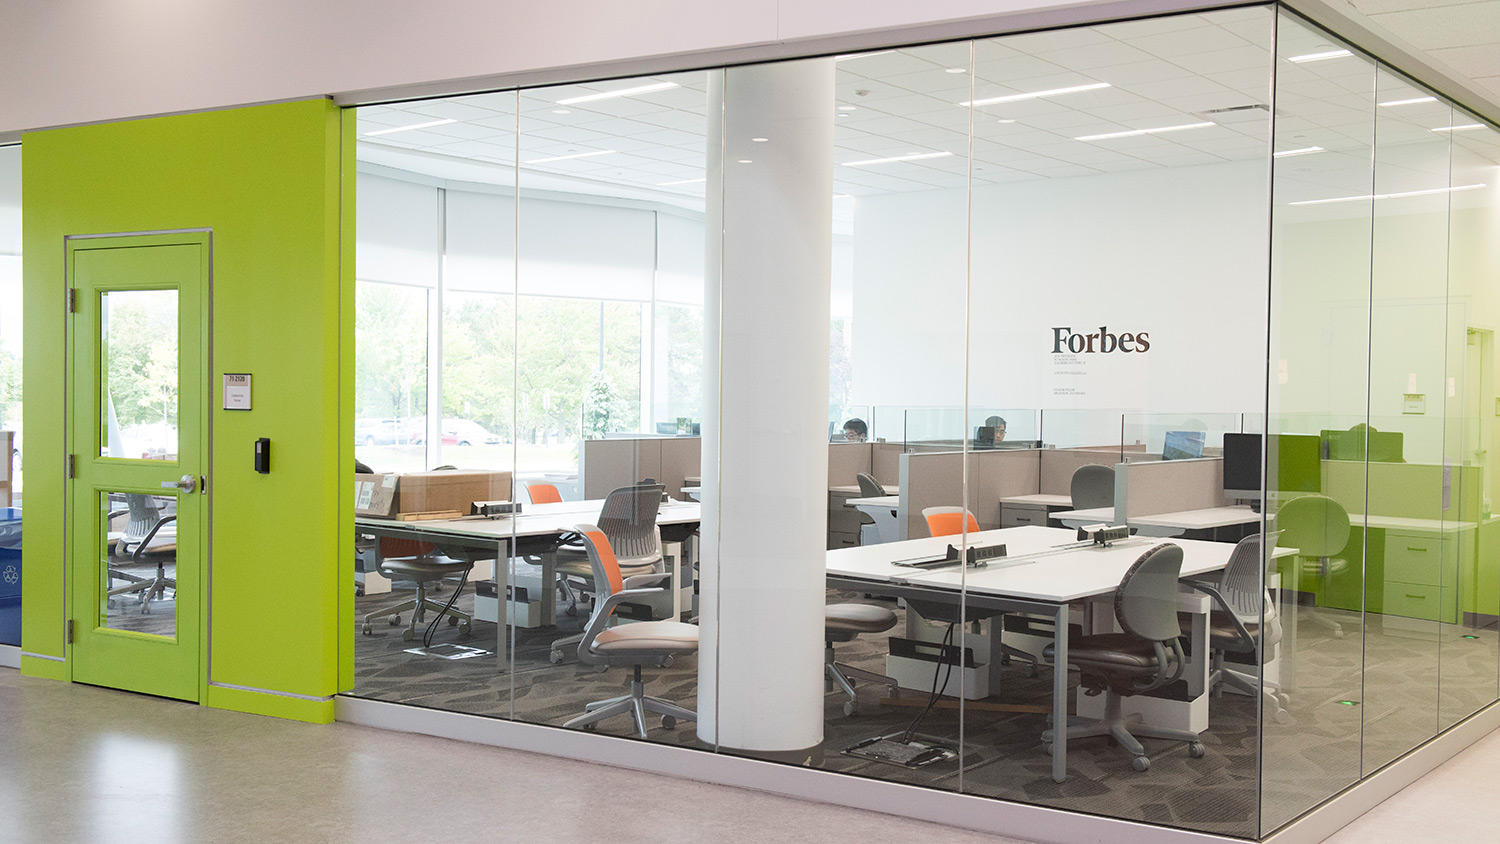 Glass room with lime-green door and several workstations with tables and chairs